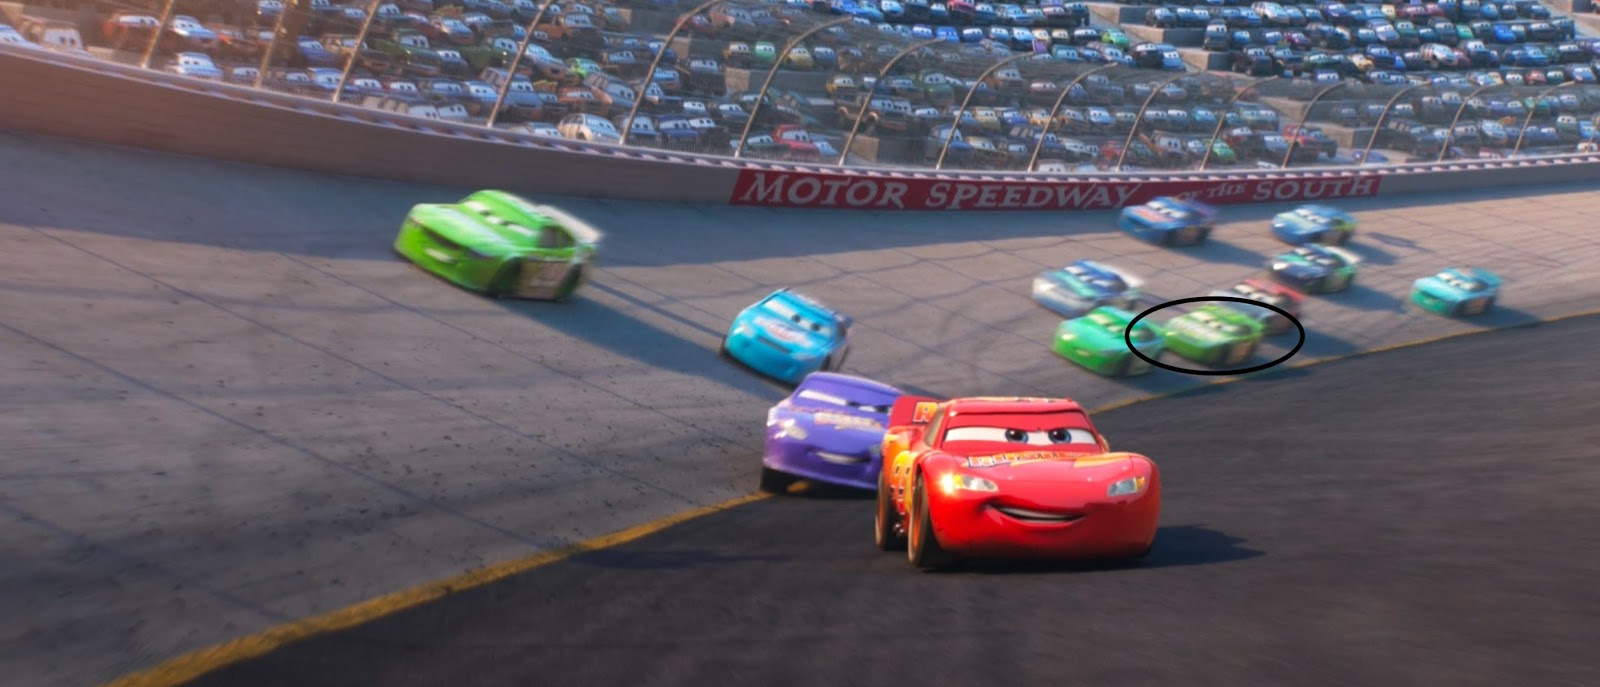 Cars 3: Darren Leadfoot (Shiny Wax)